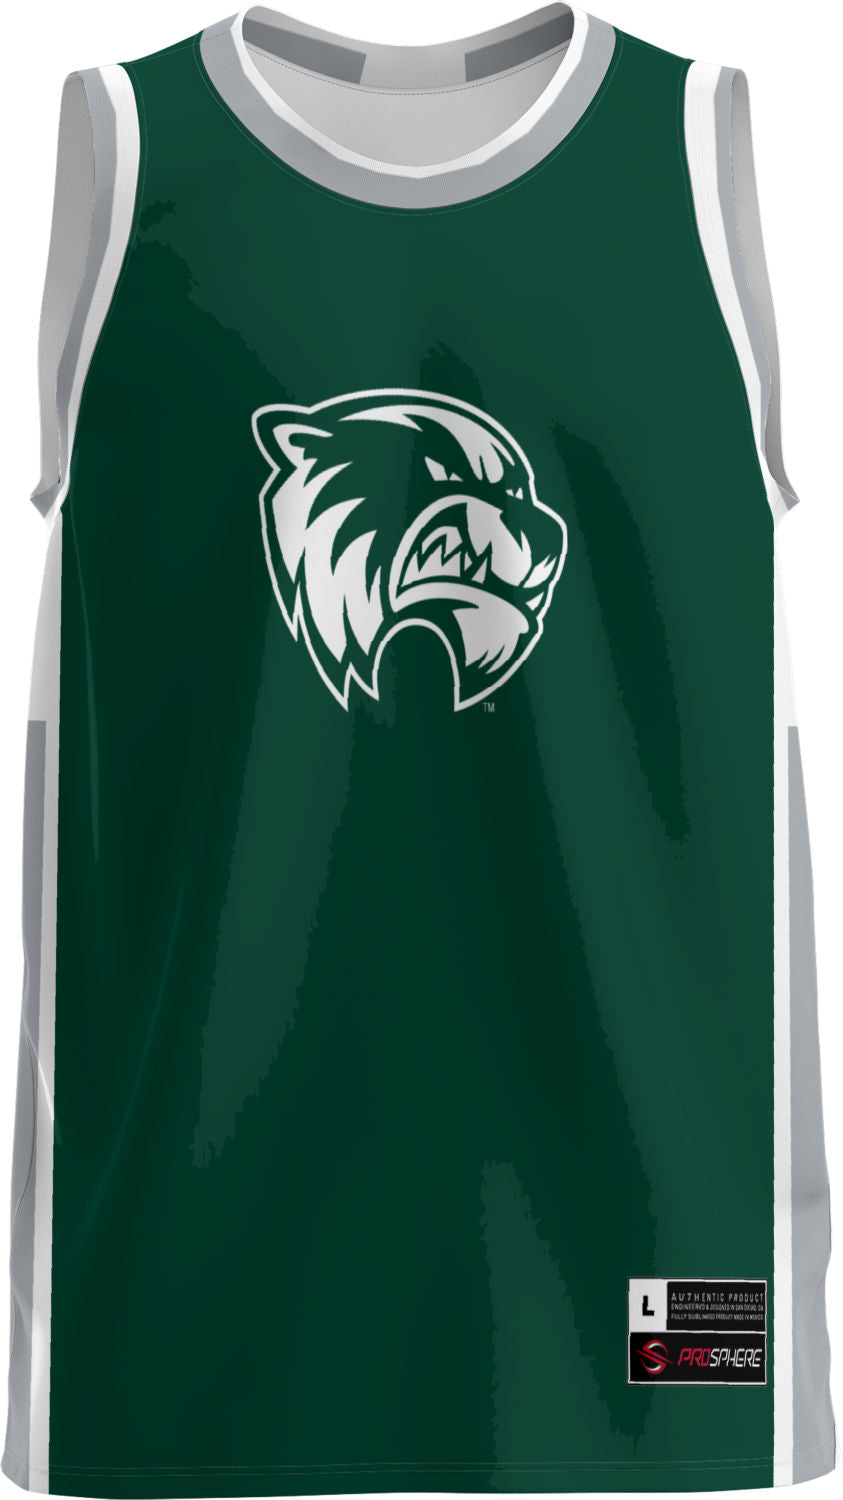 Utah Valley University Youth Replica Basketball Fan Jersey - Modern